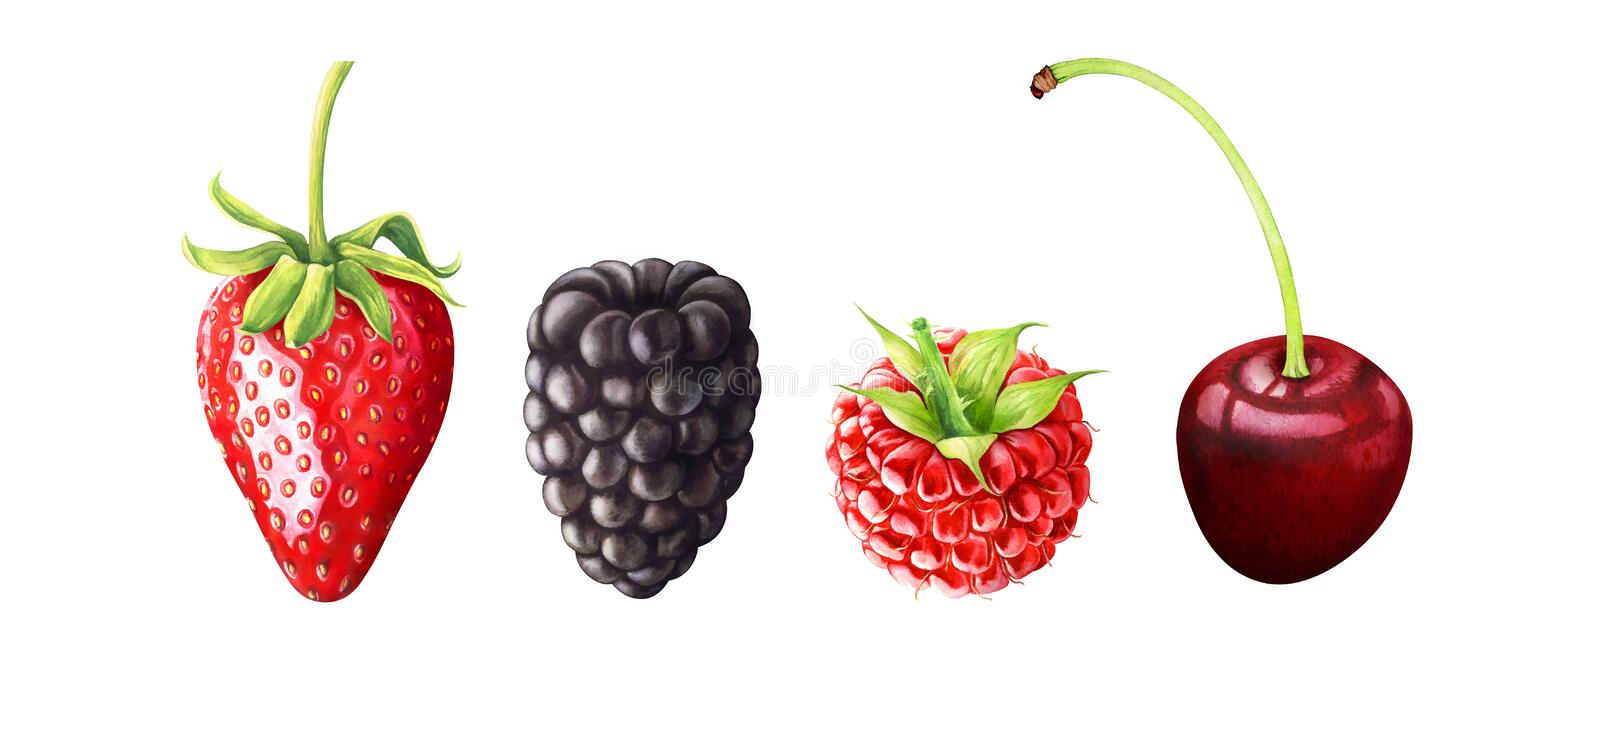 Watercolor illustration of berries. Strawberry, blackberry, raspberry, cherry isolated on white background. Hand drawn watercolor illustration of berries stock illustration